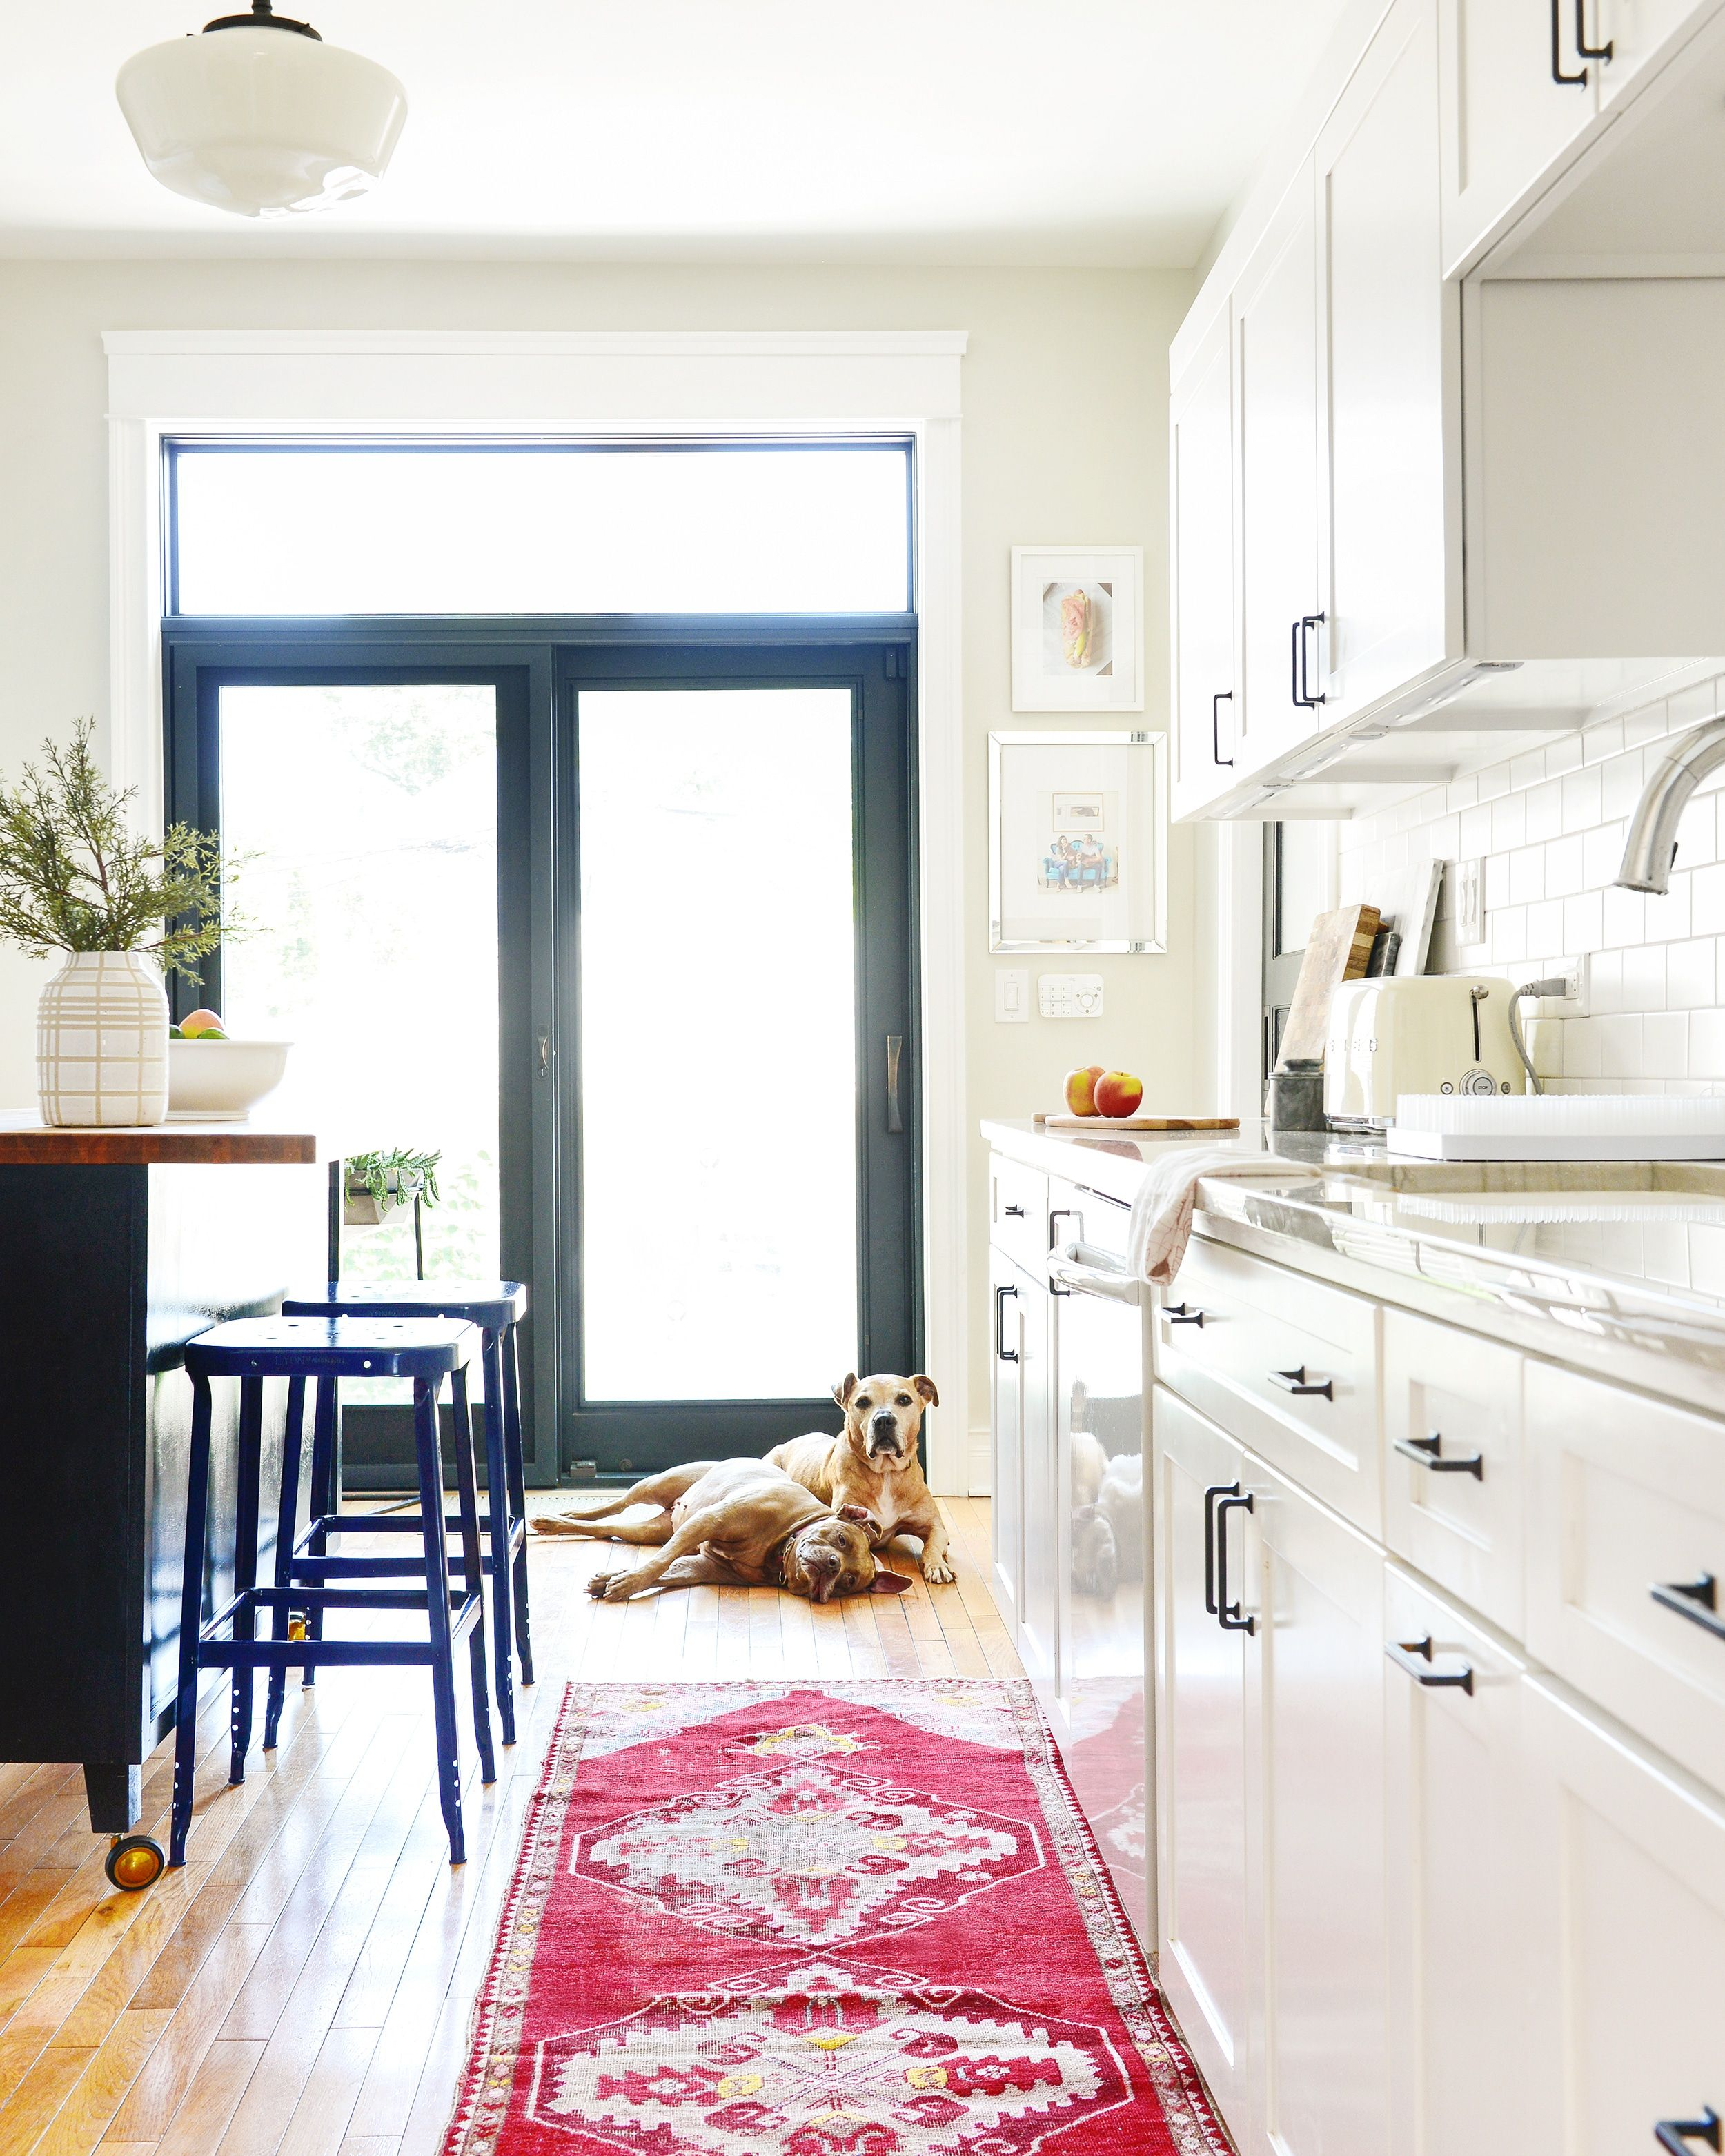 Home Essentials That Look Good Doing Their Thing The Kitchen In 2020 Yellow Kitchen Home Inset Cabinets